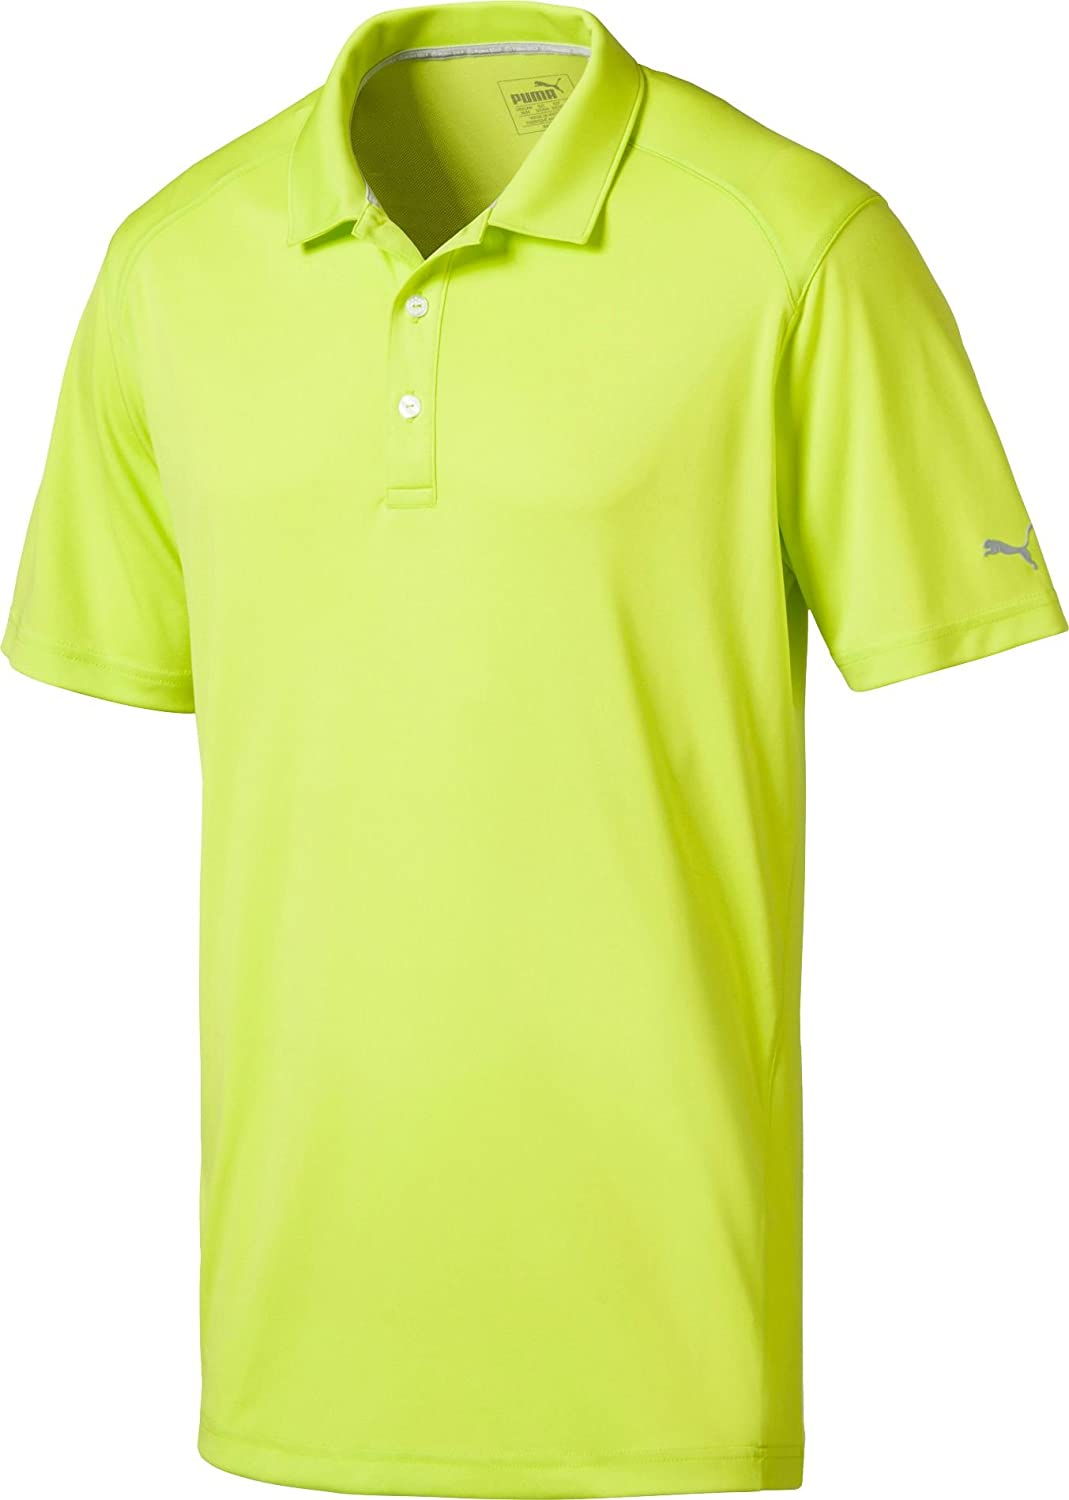 [プーマ] メンズ シャツ PUMA Men's Essential Pounce Golf Polo [並行輸入品]   B07CNLSXNC